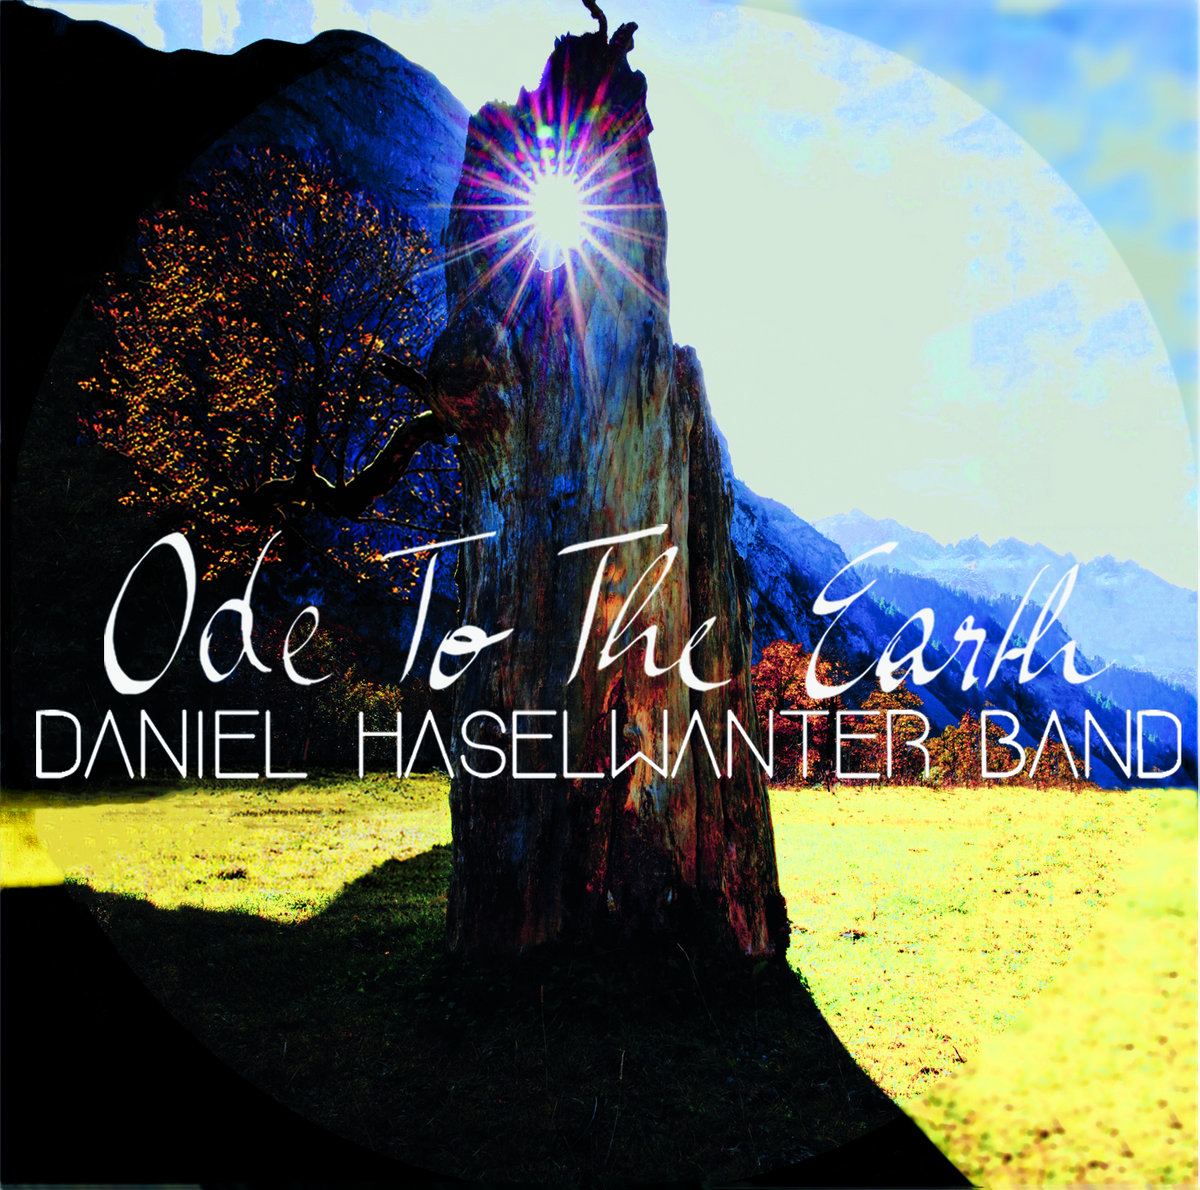 Ode To The Earth | Daniel Haselwanter